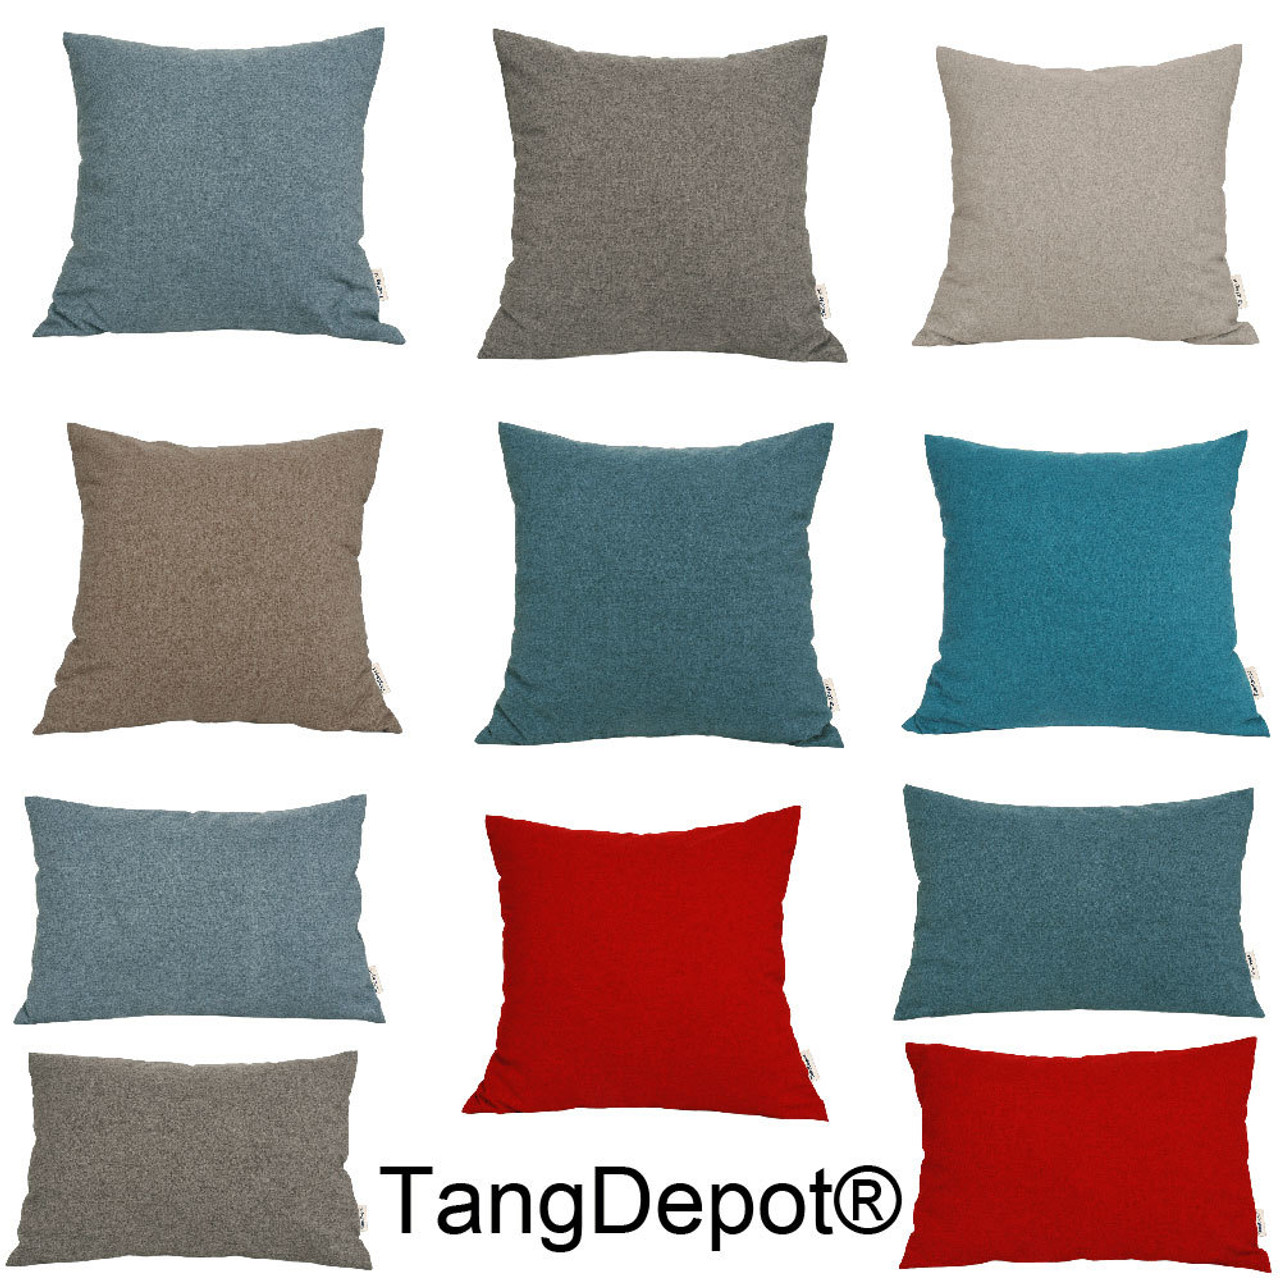 tangdepot solid wool like throw pillow cover euro sham cushion sham super luxury soft pillow cases handmade many colors sizes avaliable